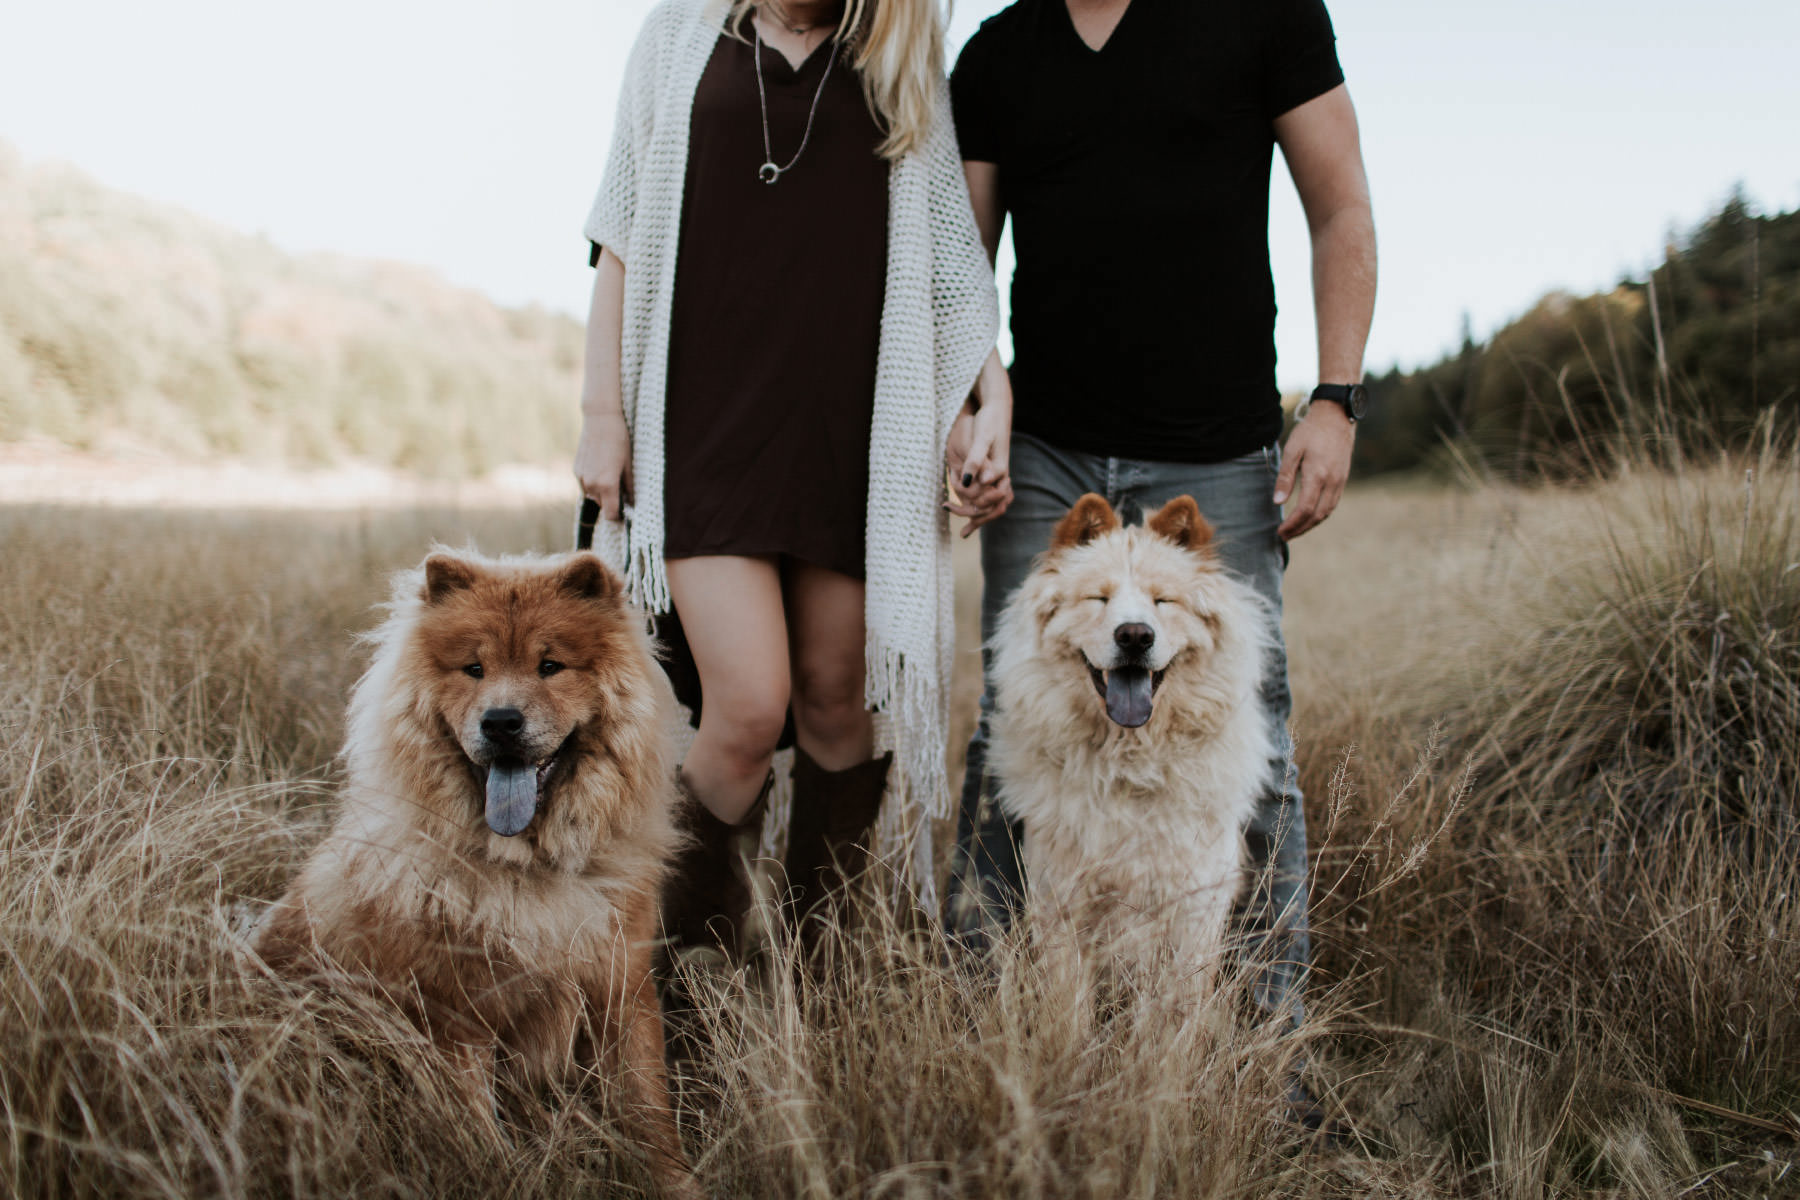 Two smiling Chow Chow dogs with their engaged owners